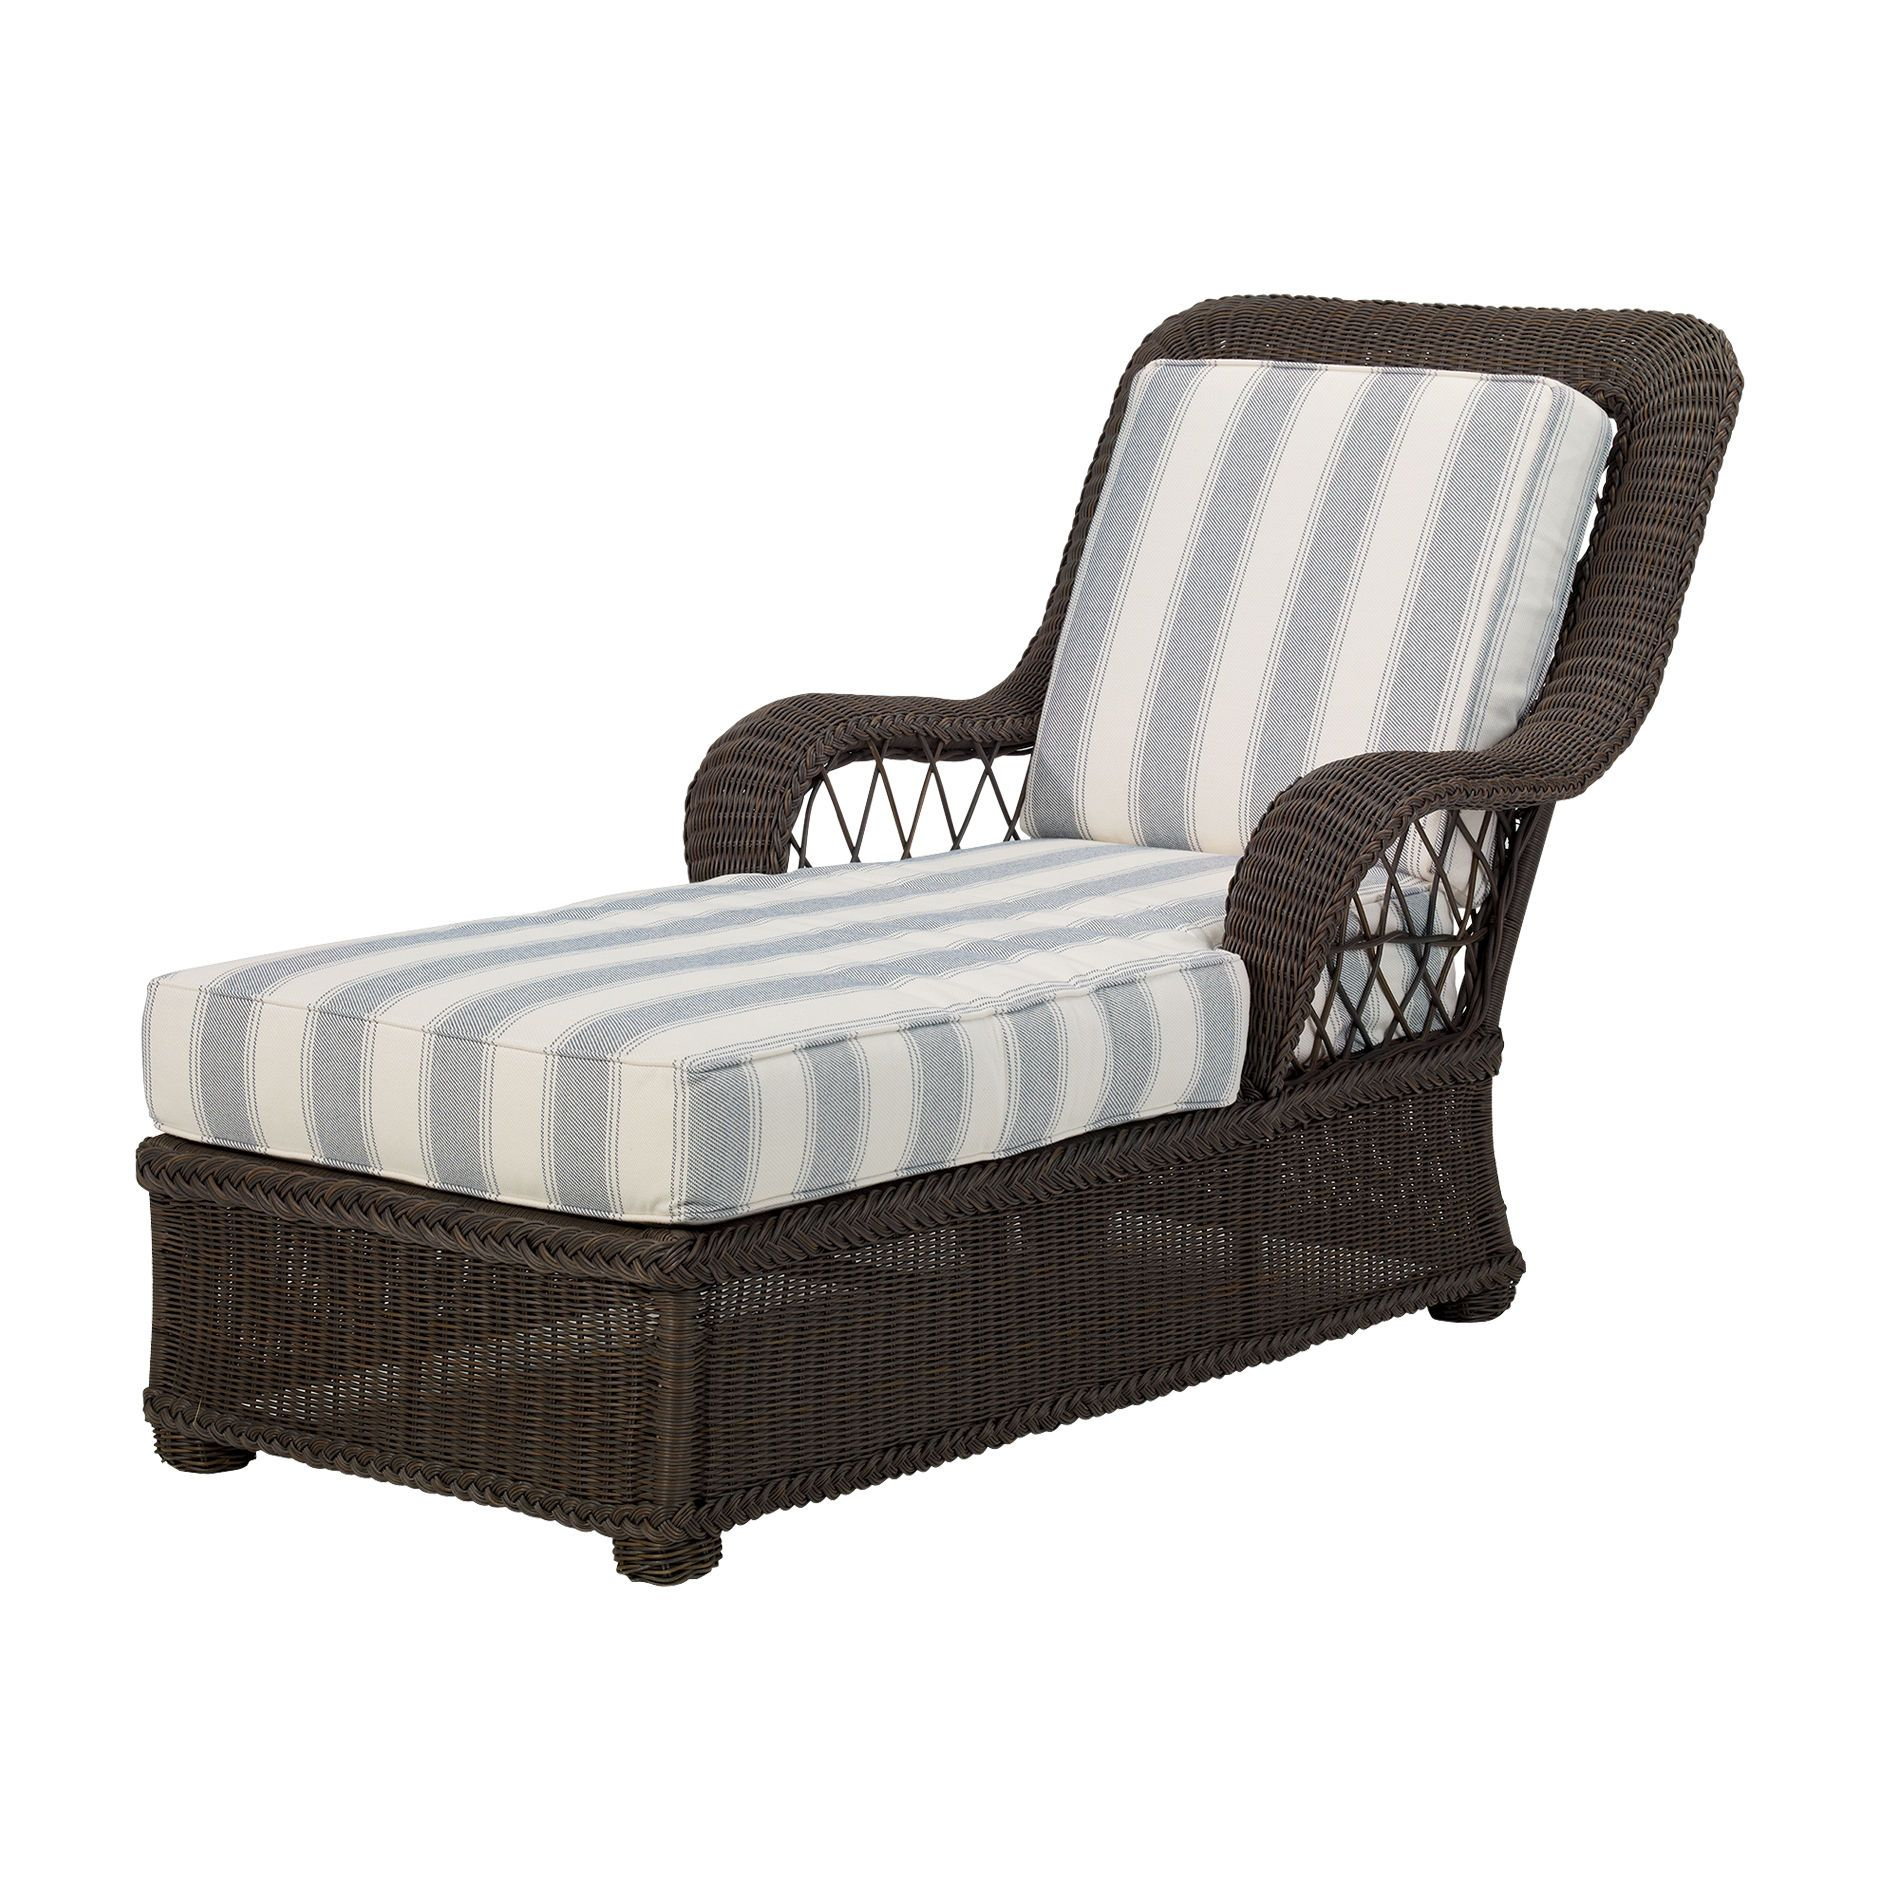 Lakehouse Chaise - Ethan Allen Home and Garden Furniture. | ETHAN ...